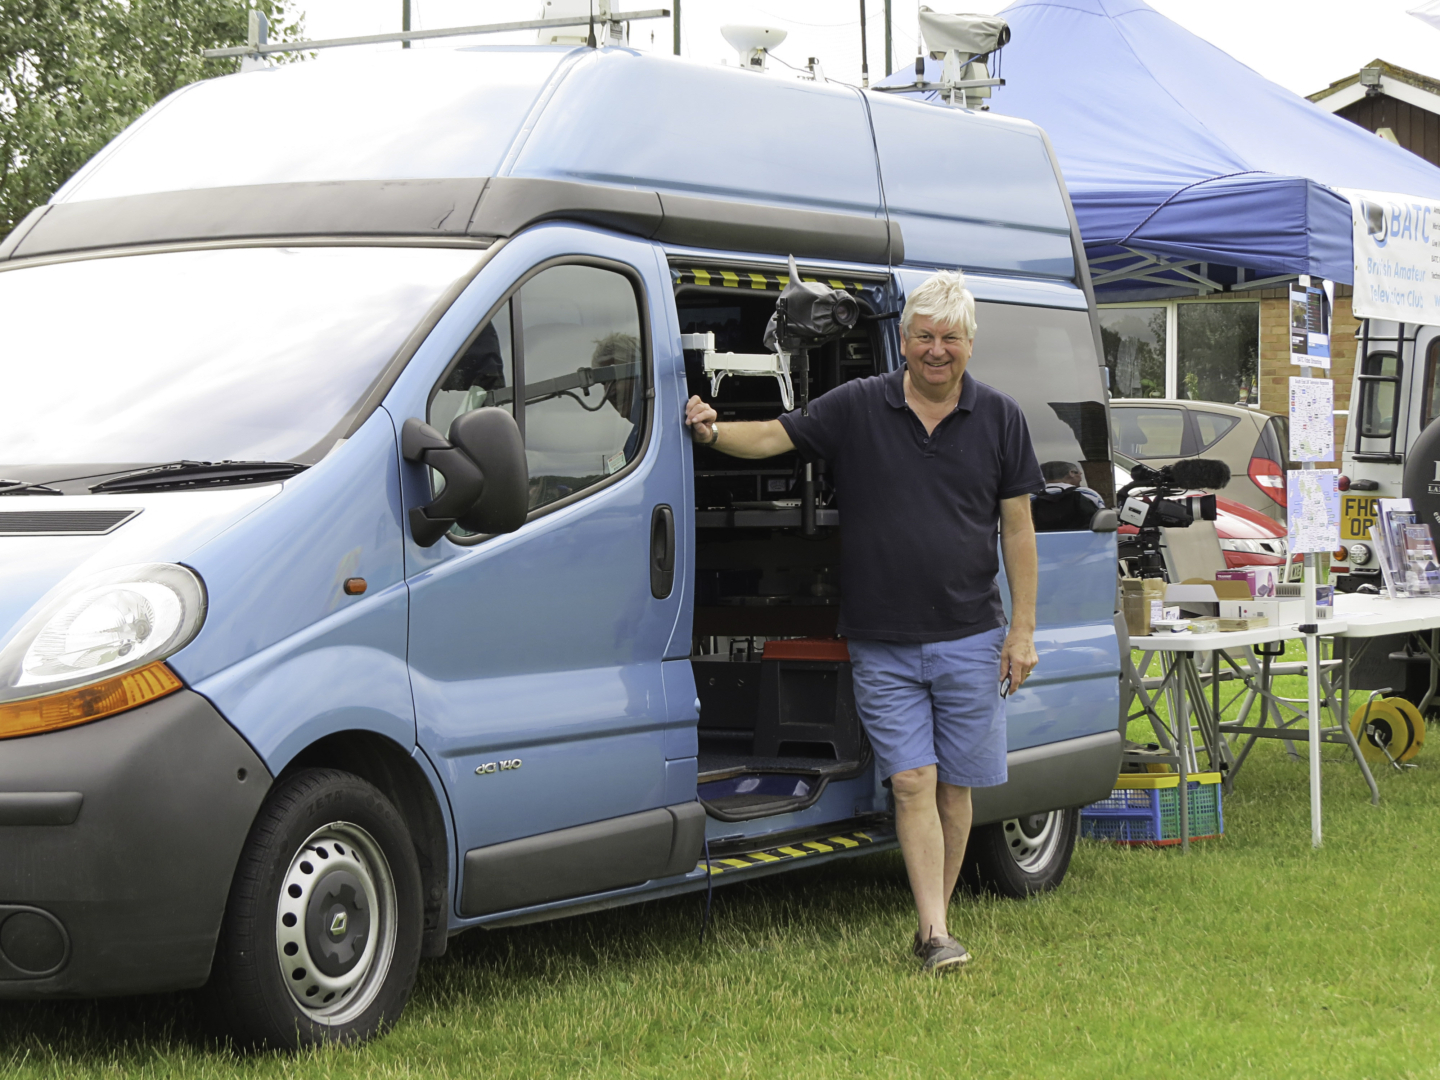 Tony with his Mobile ATV Van alogside BATC Stand at the Reading Rally July 2016